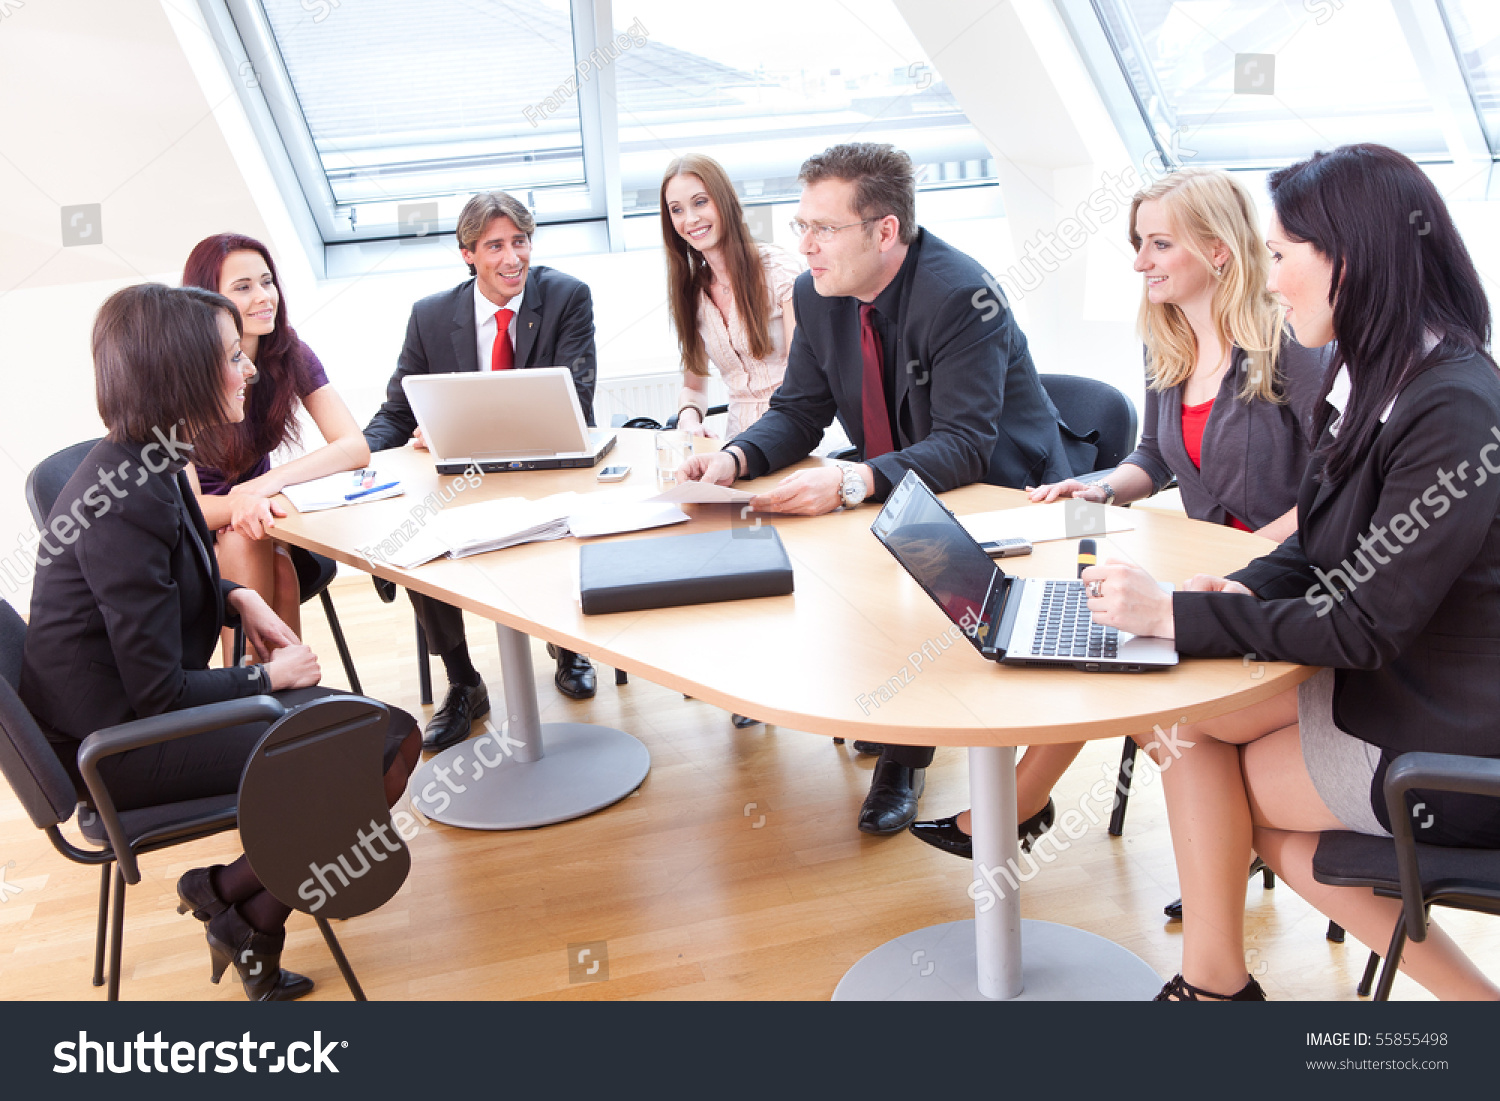 Casual Ambiance At The Business Meeting In A Modern Office Stock Photo